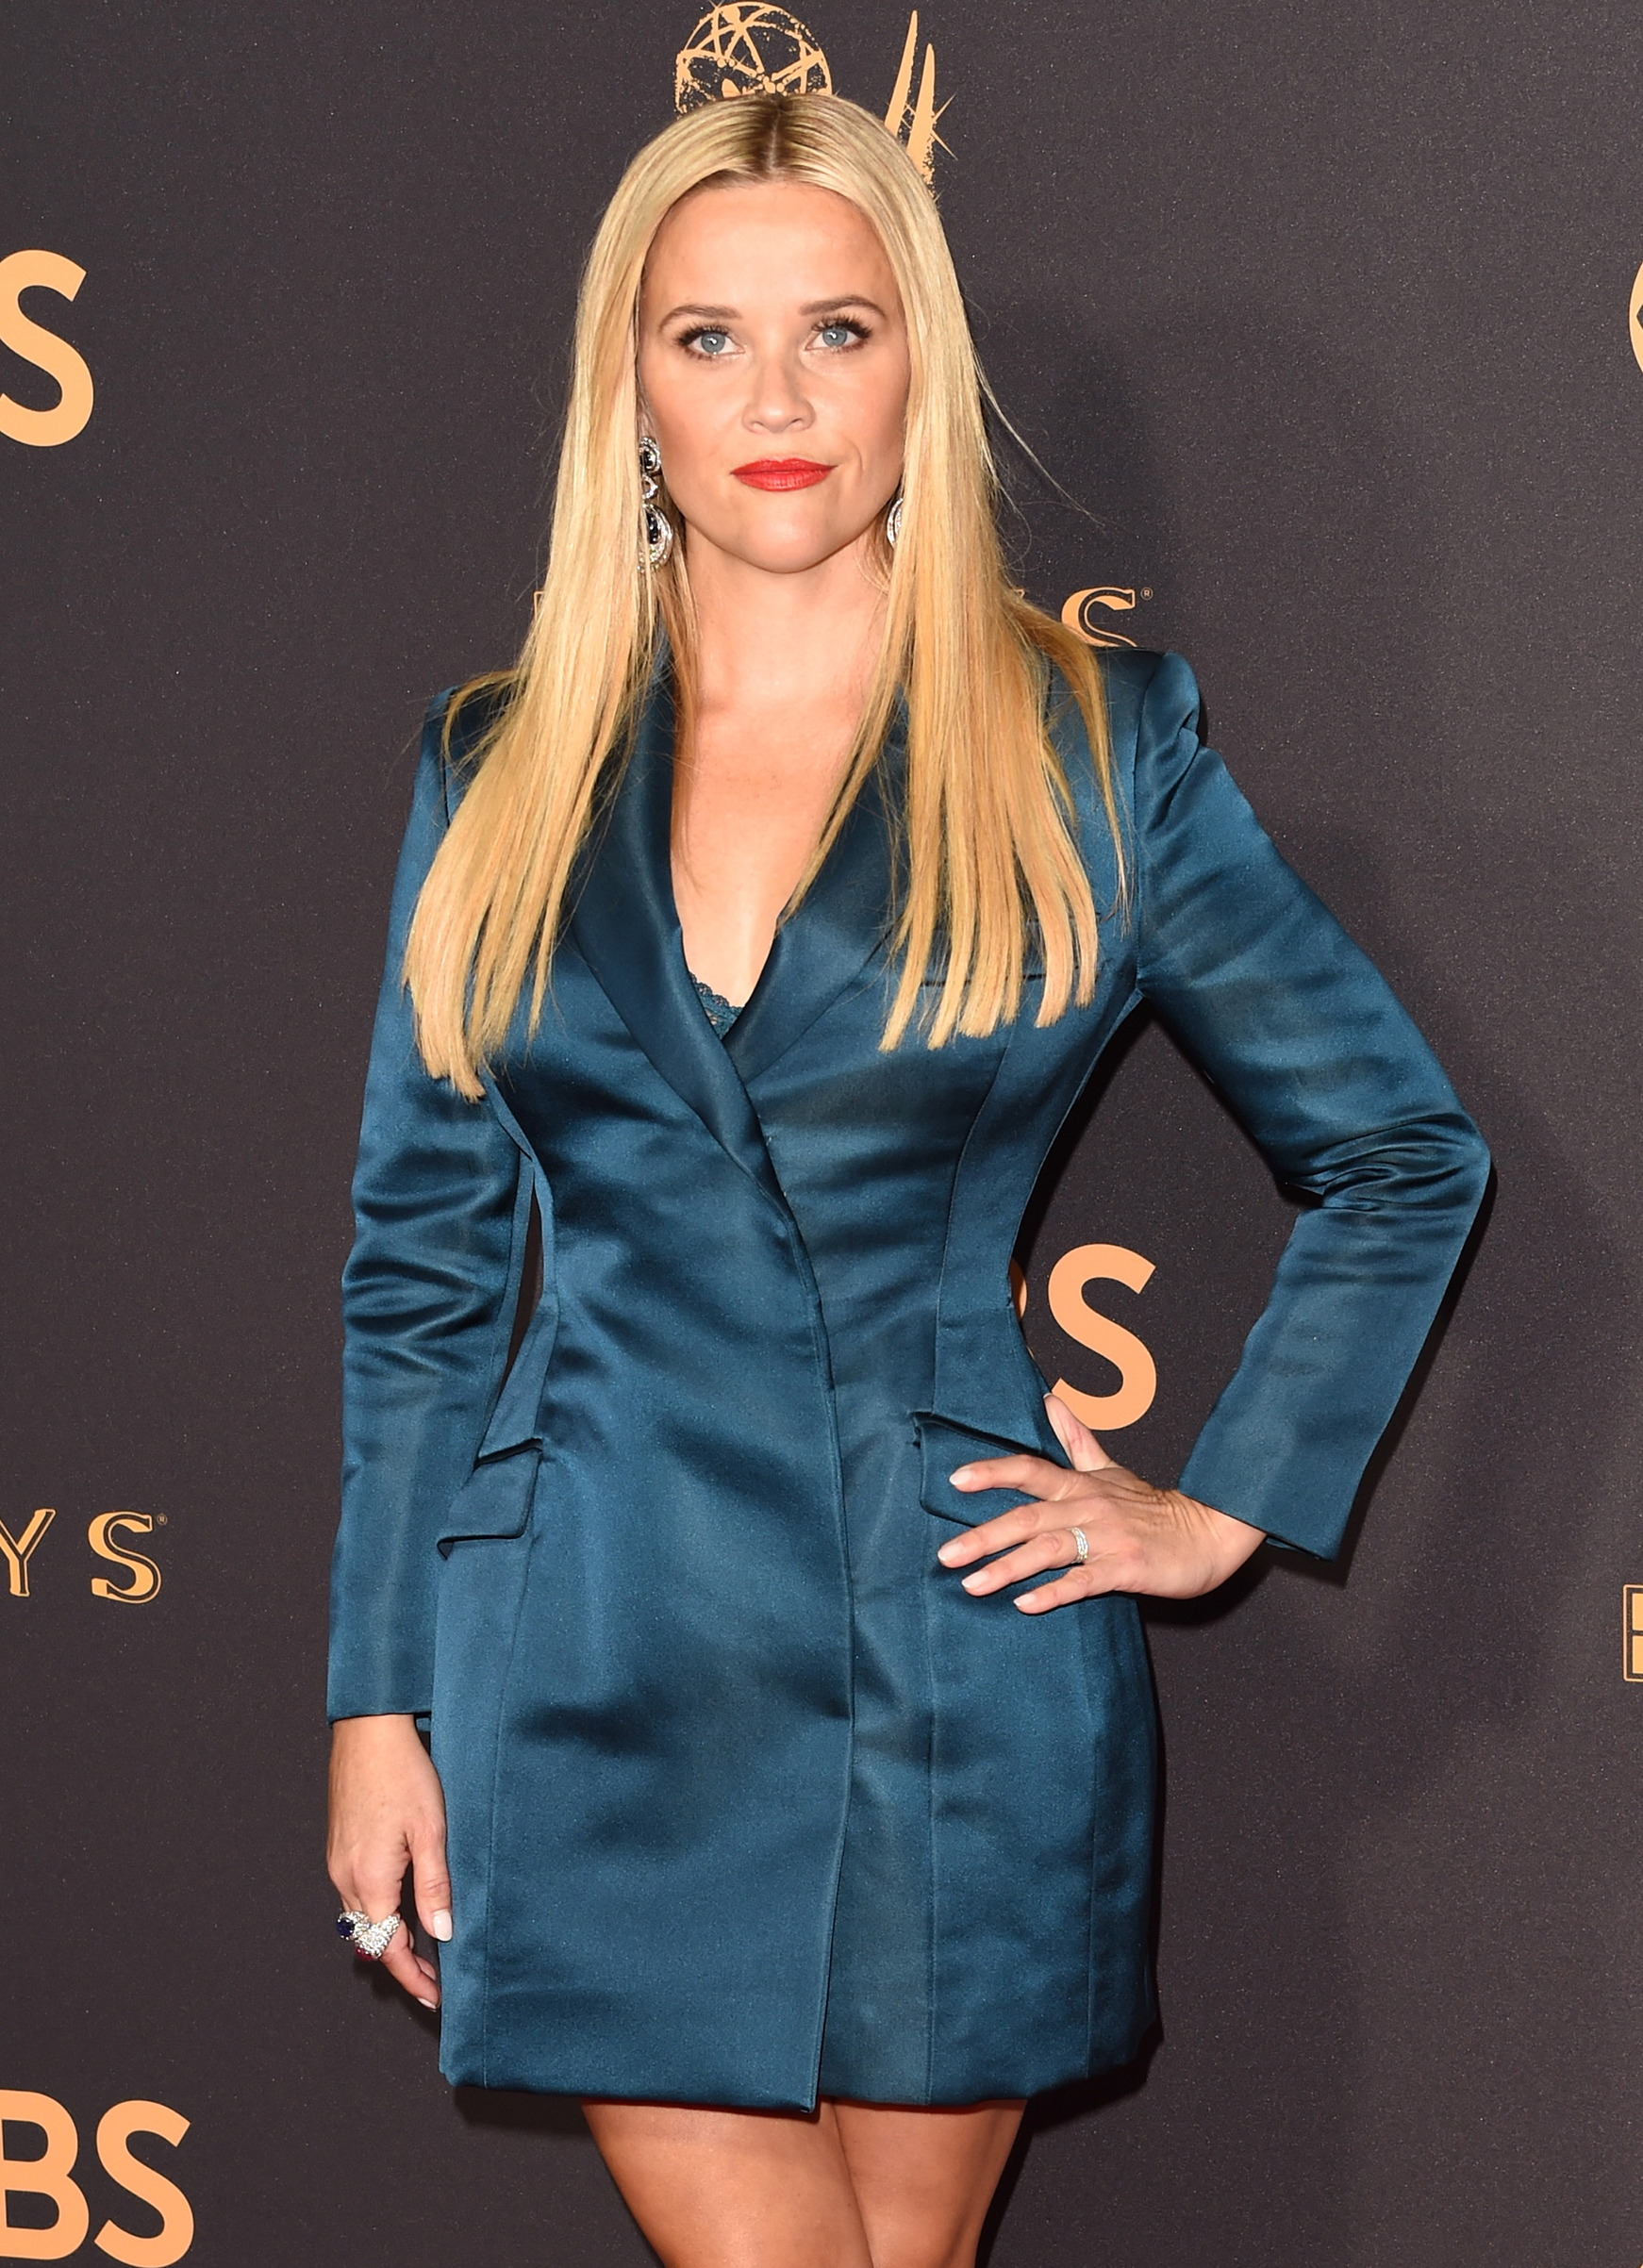 Actor Reese Witherspoon attends the 69th Annual Primetime Emmy Awards at Microsoft Theater on September 17, 2017 in Los Angeles, California.